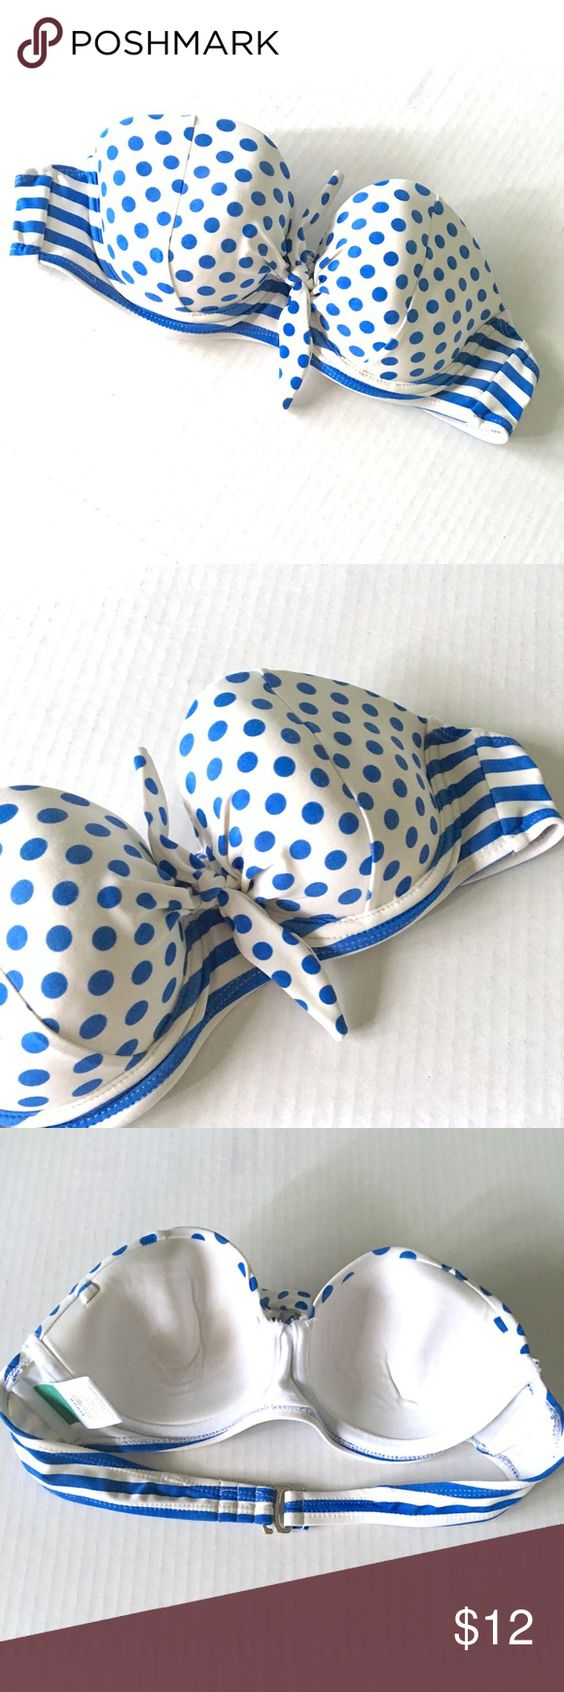 Polka Dot Bandeau Bikini Top Sz S (4/6) Blue Polka Dot Bandeau Bikini Top // has place for a halter strap, but I don't have one to include with it // Collections by Catalina // lightly padded // Same Day or Next Day Shipping!! Offers Welcome! // 20% off 3+ Bundles! // 8.7.12 Catalina Swim Bikinis